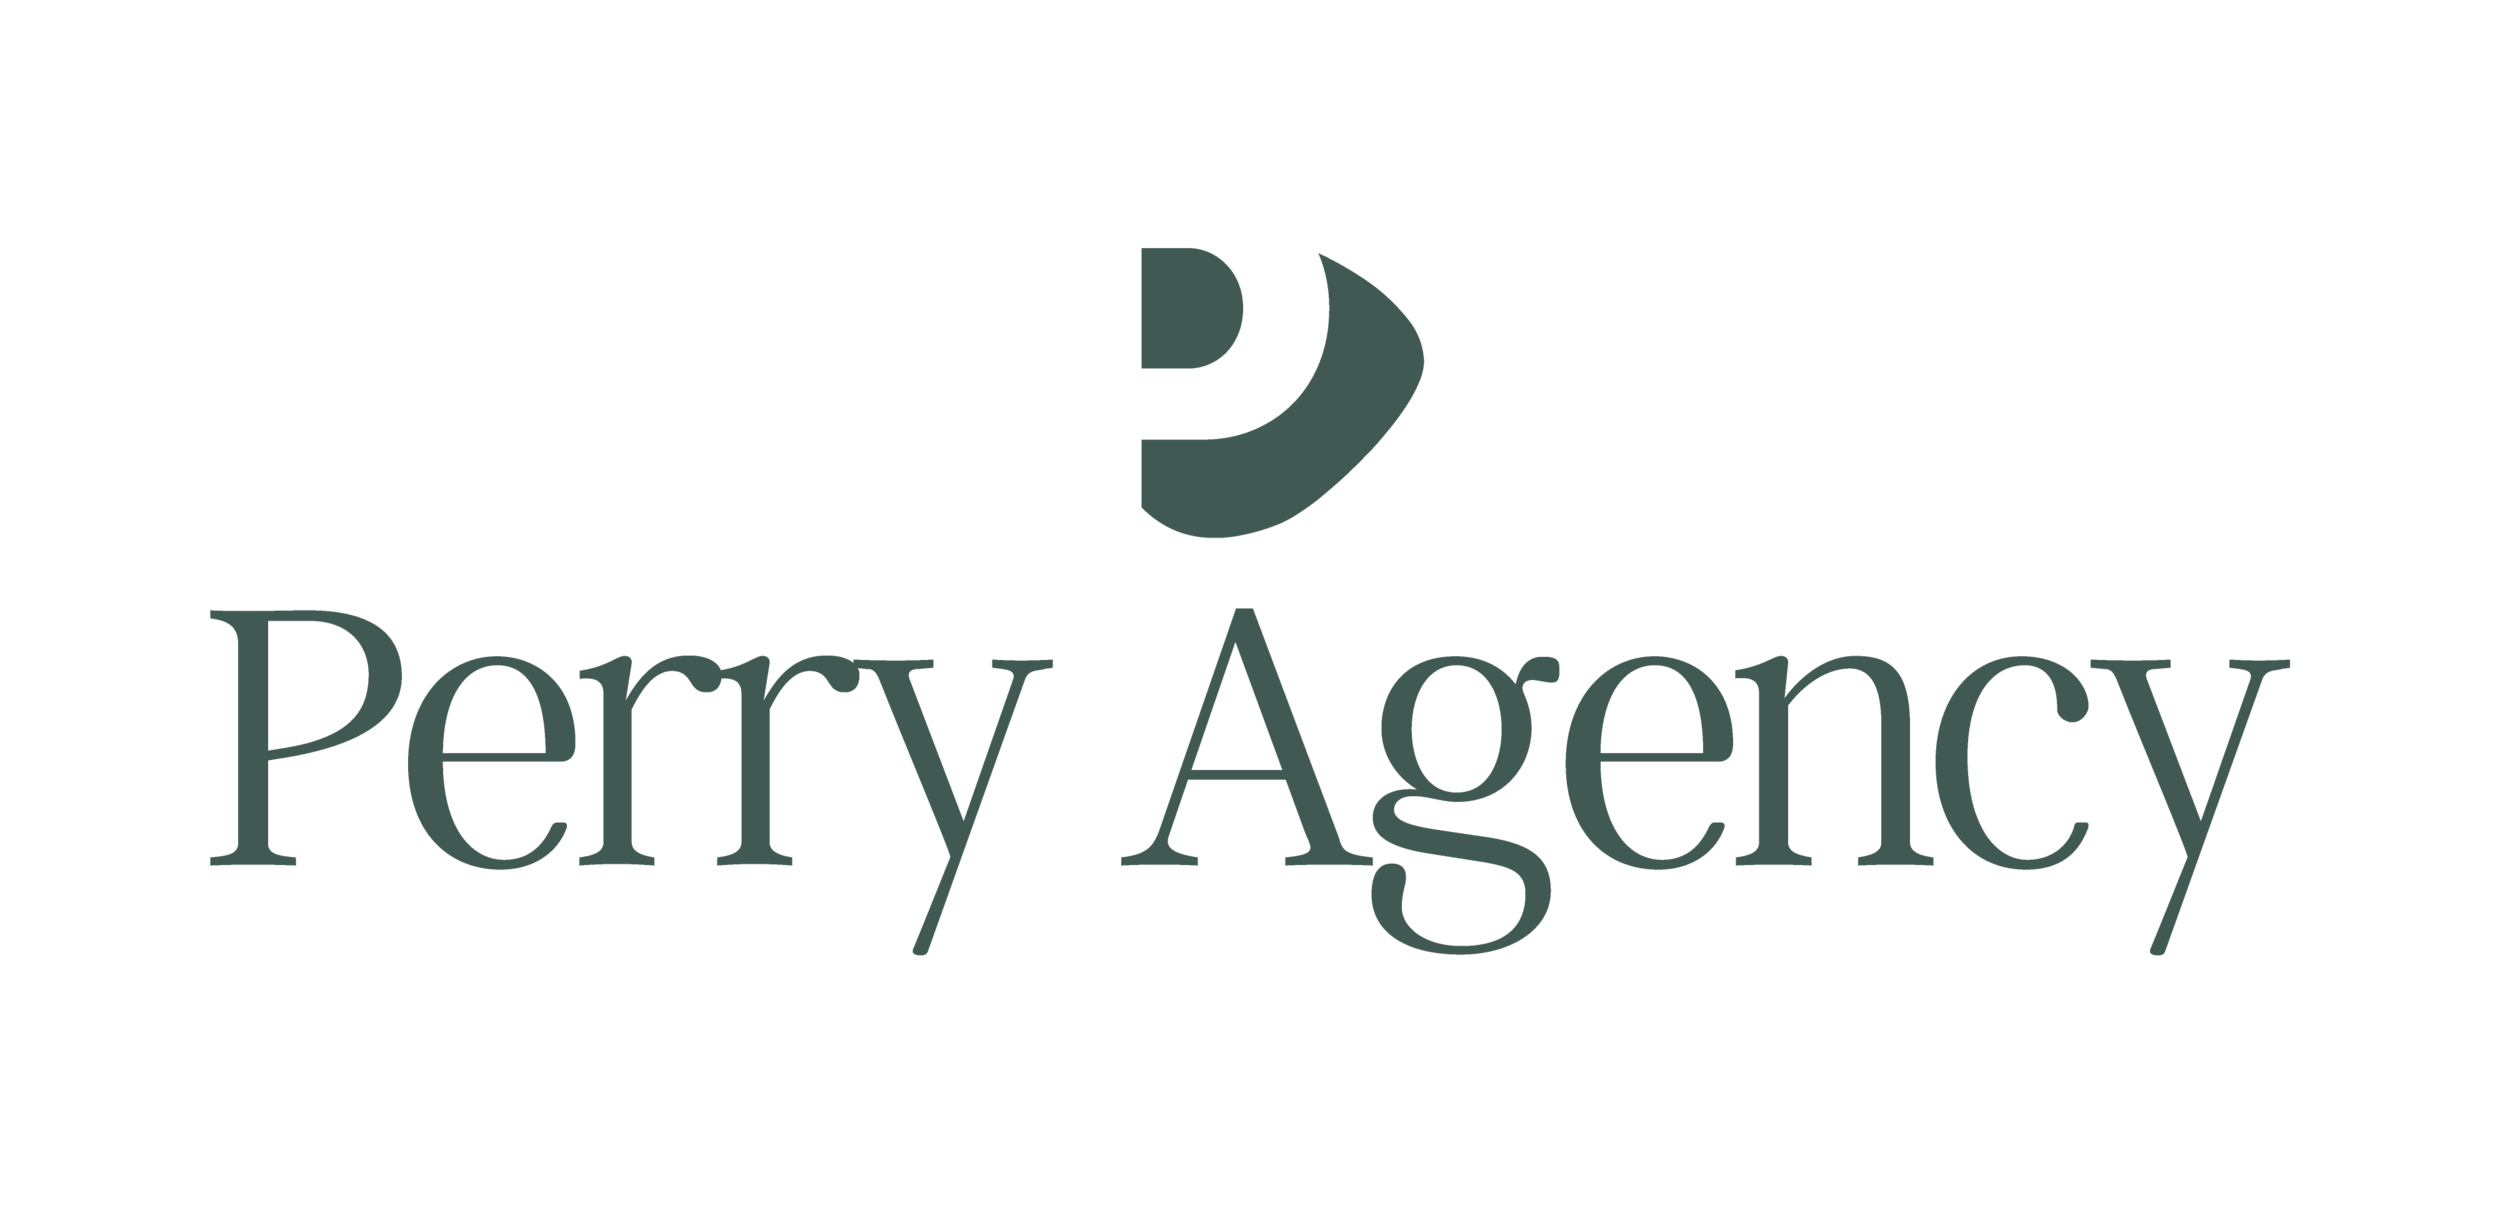 Perry Agency